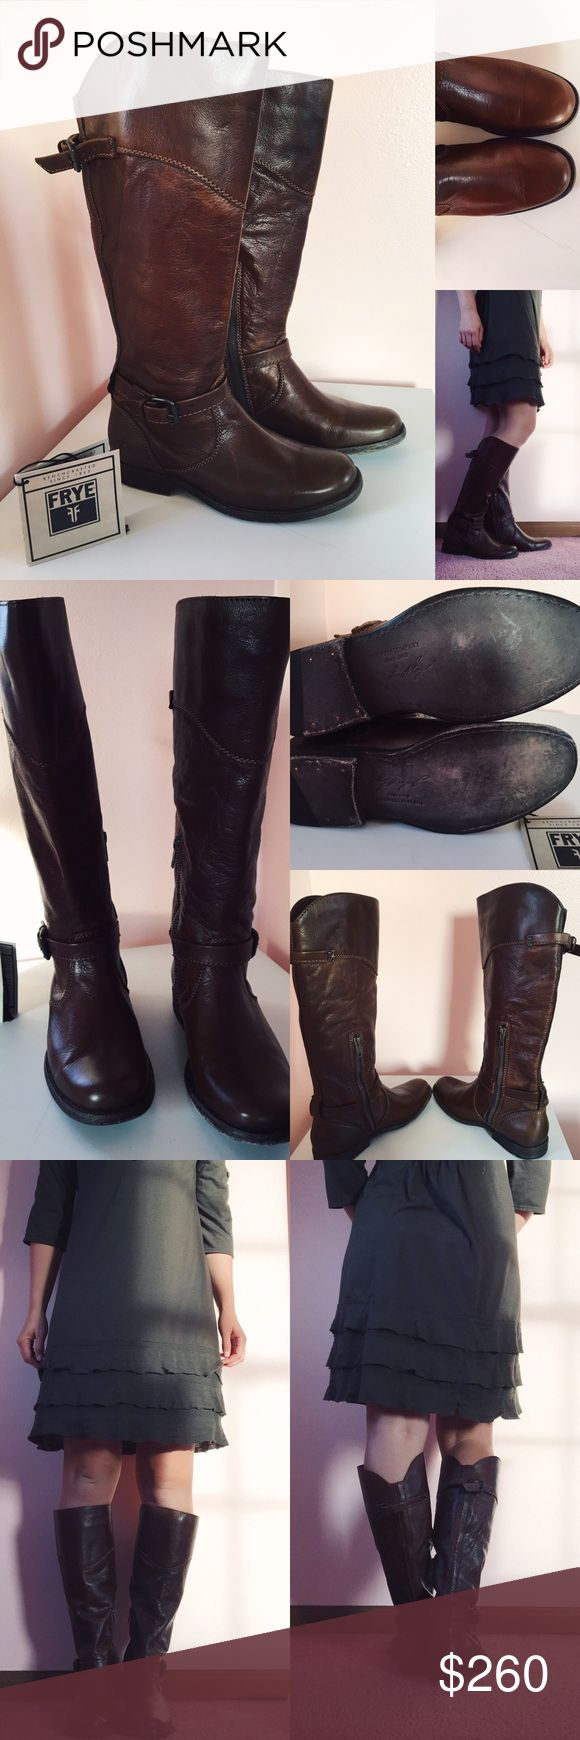 "Frye Women's Riding Boots Brand new Fyre Women's riding boots. Beautiful chocolate brown, inside zipper. Leather soles and soft leather. I'm 5'3"" with calves measuring 14"" and these are just a little more snug than I want them to be, though the leather should stretch a bit with wear. Frye Shoes Winter & Rain Boots"